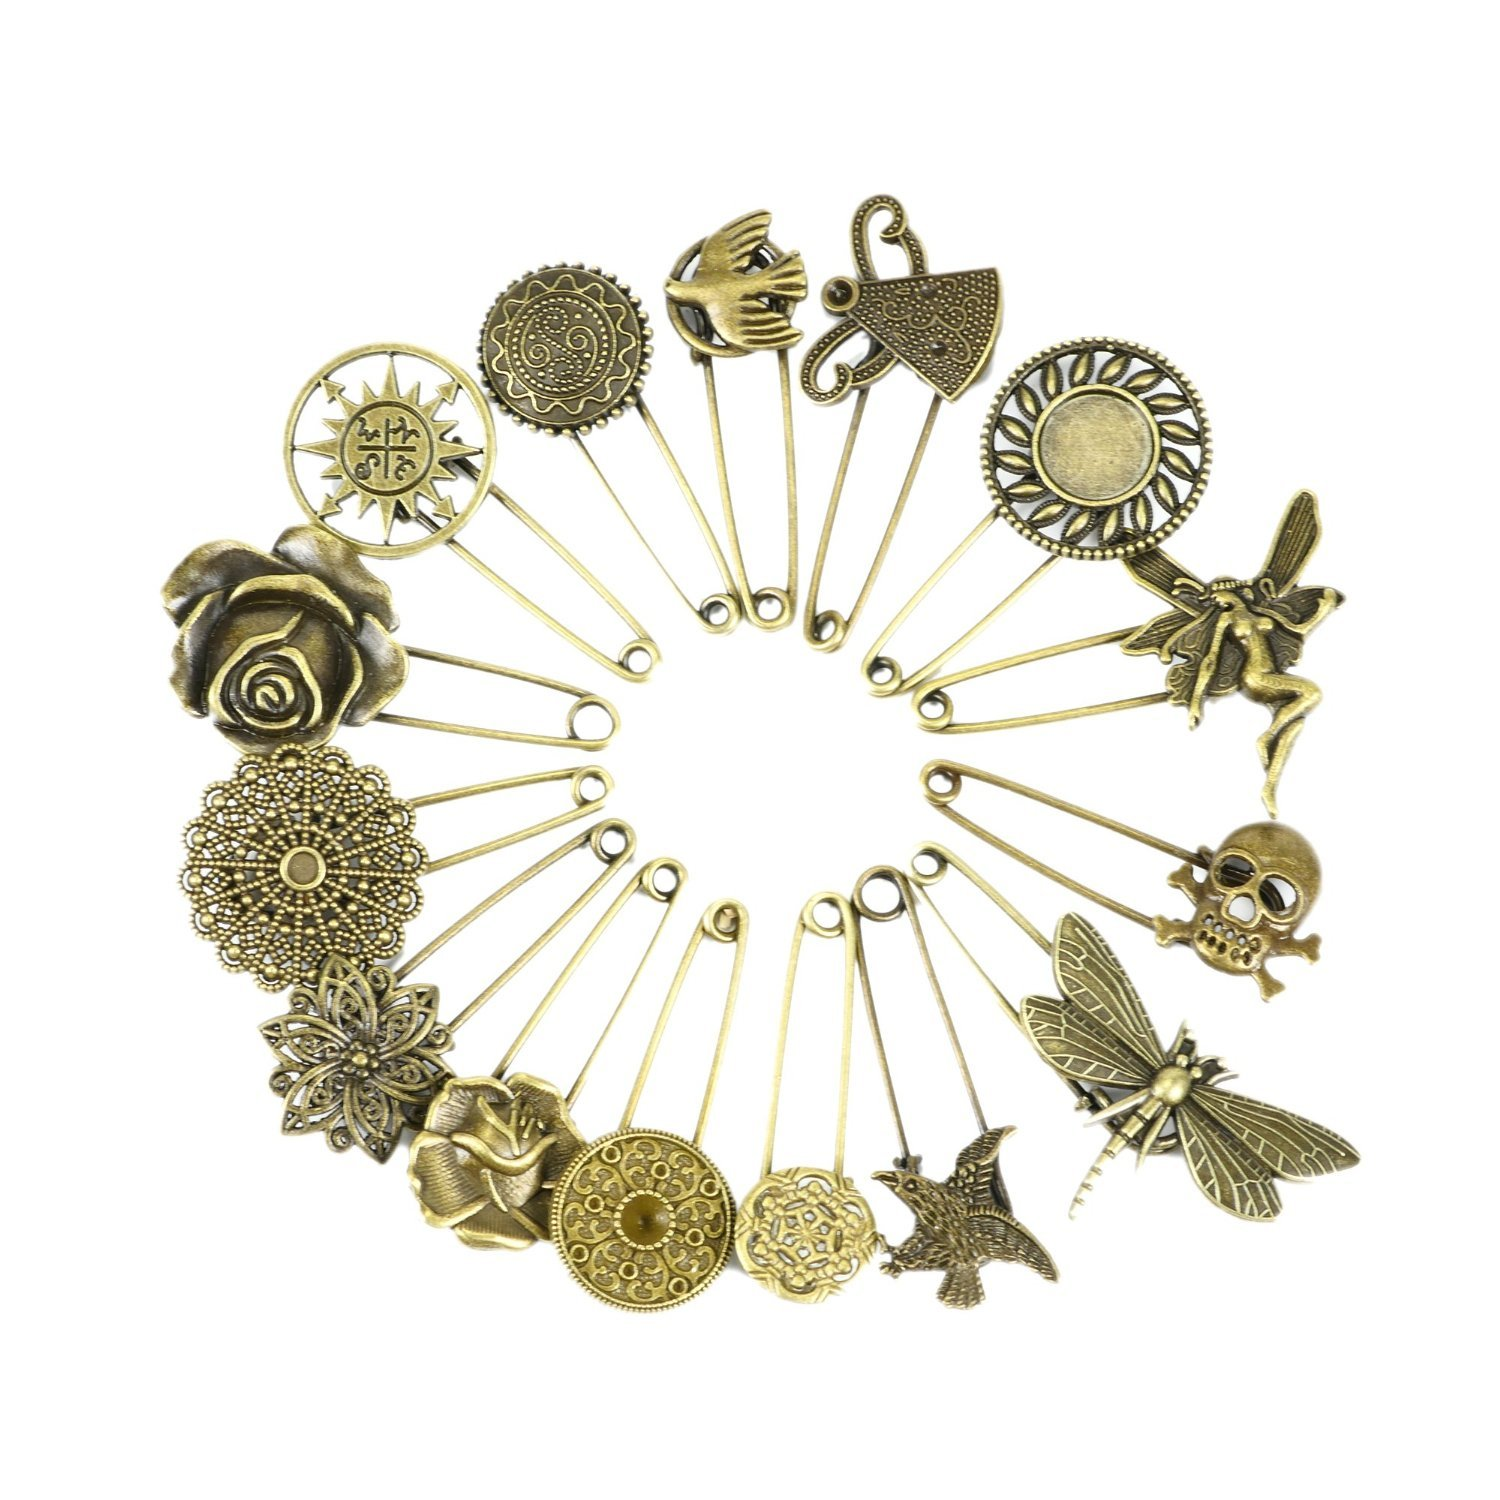 f16051417 Get Quotations · Wisehands 15 Pcs Bronze Vintage Brooch Pin Hijab Pin  Safety Pin Set